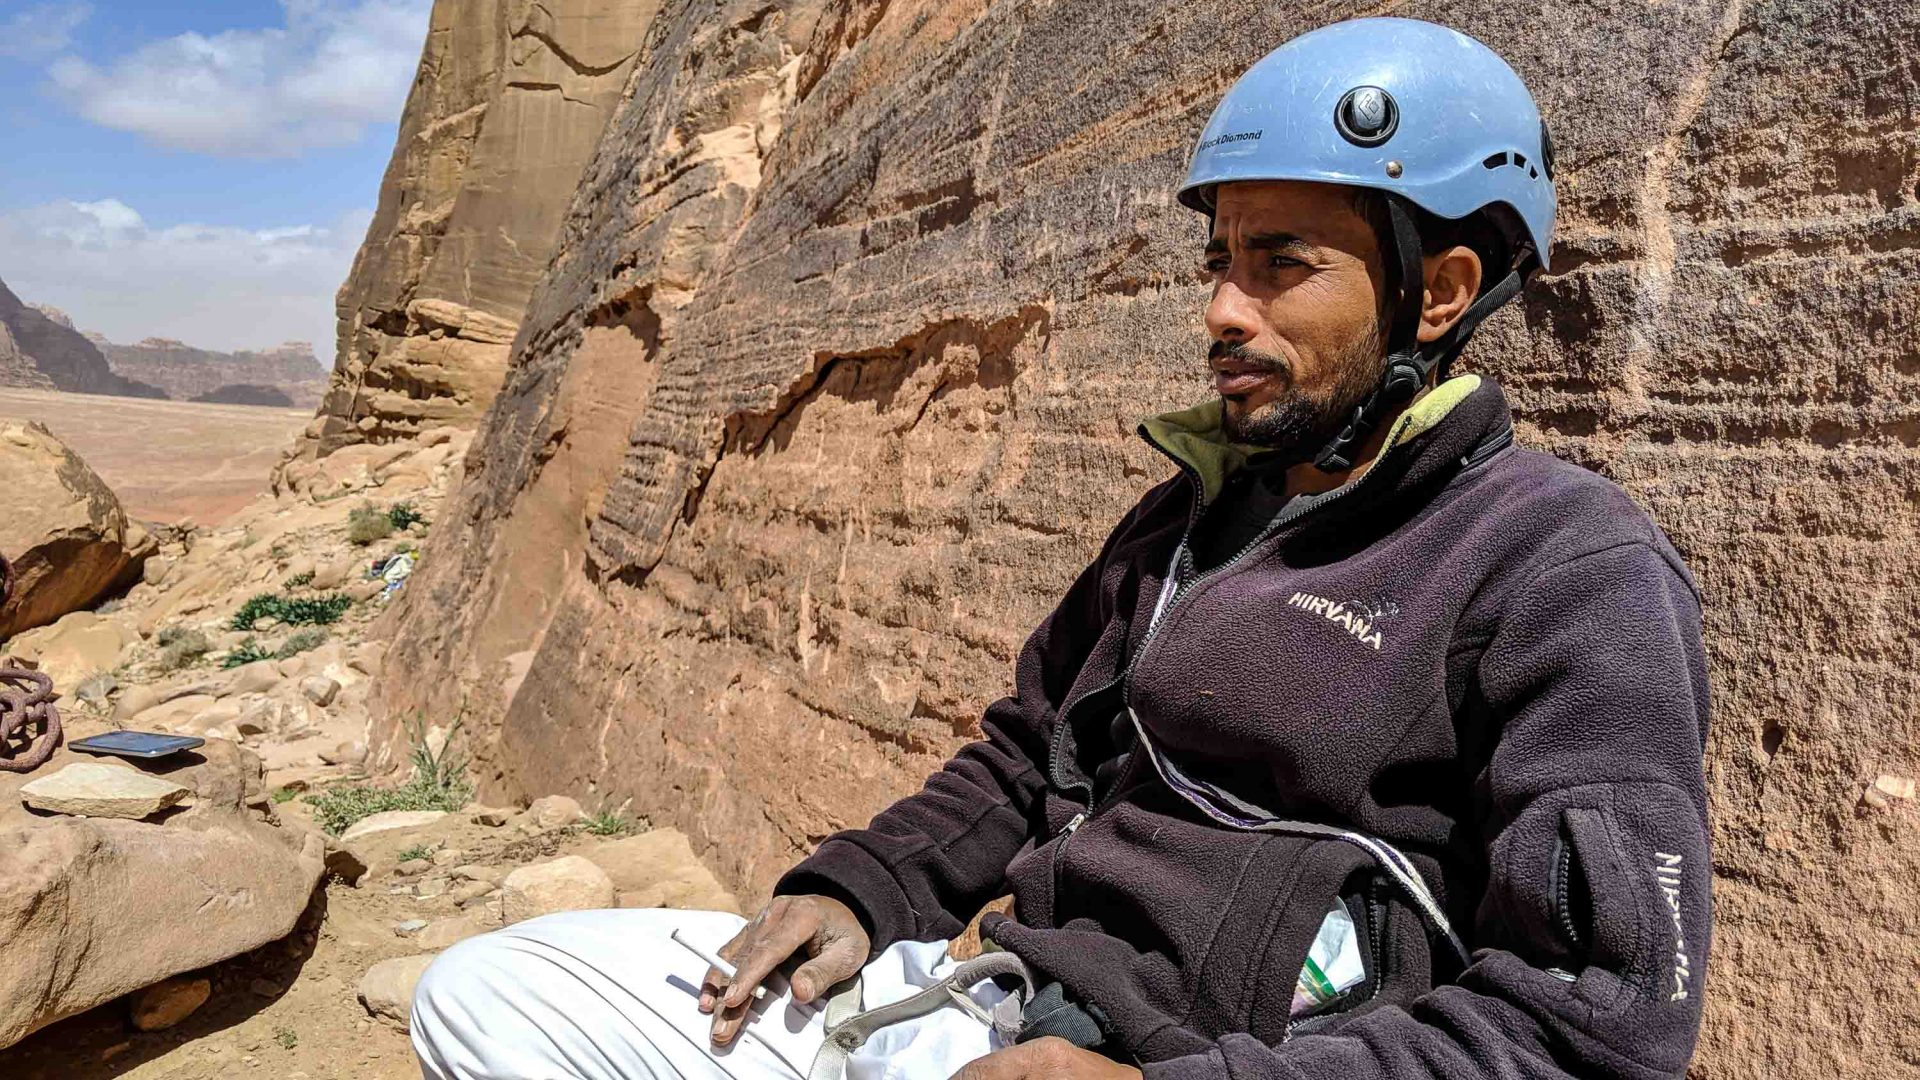 Abdullah from the locally run Shabab Sahra guide association smokes a cigarette at the base of the rock face.